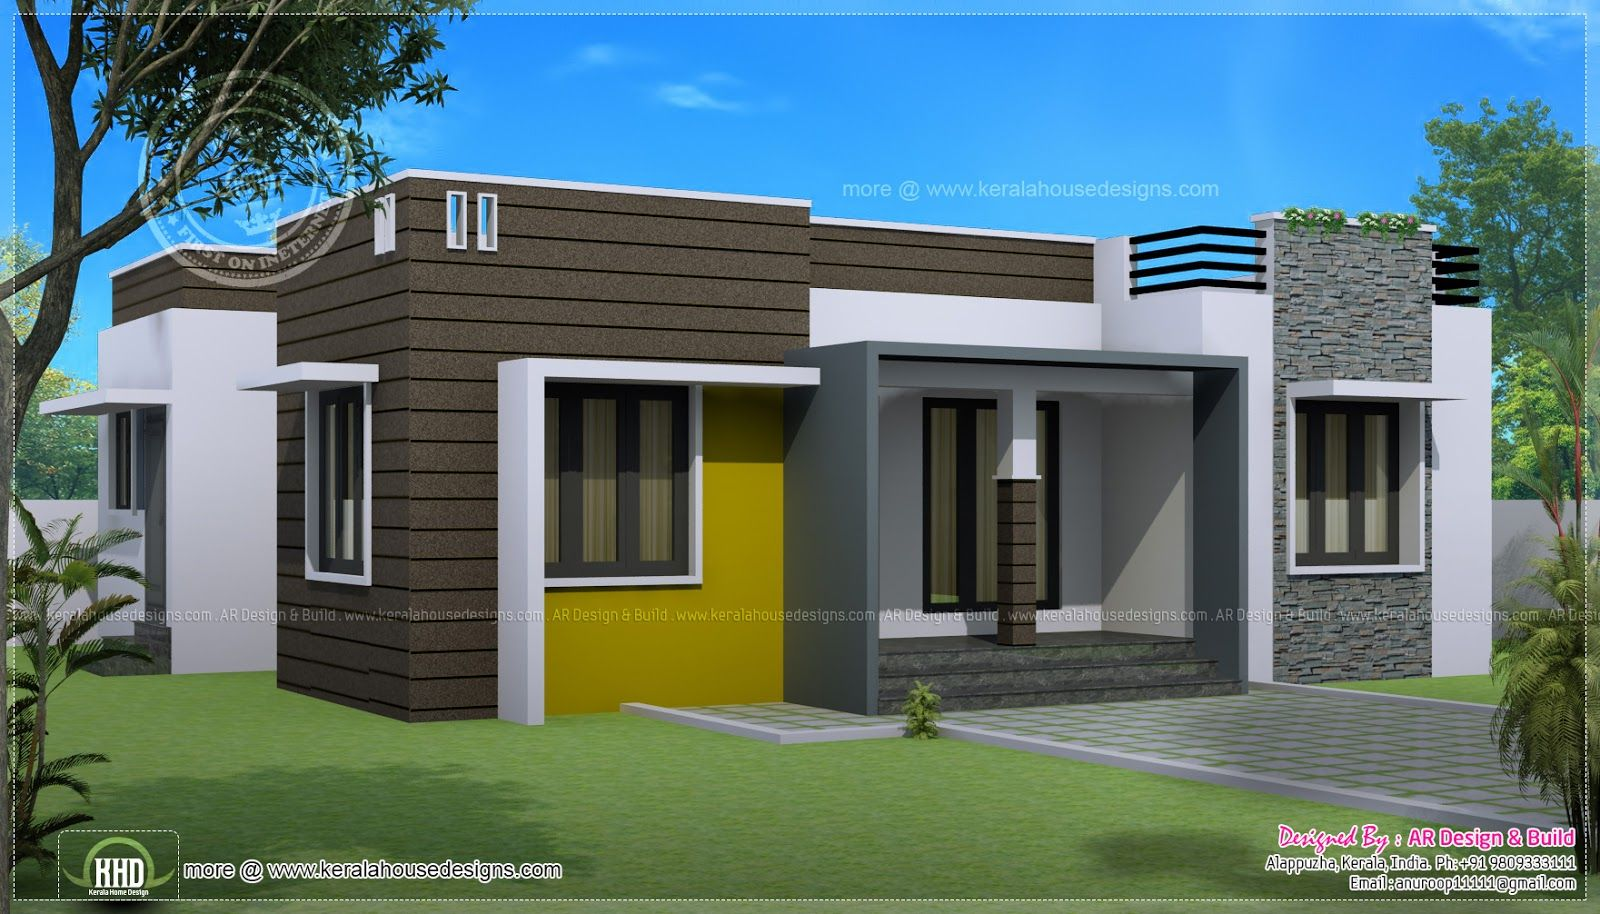 Fantastic 200 Sq Ft House On 1000 Sq Ft Home Design Single Floor House Design Kerala House Design Home Design Floor Plans